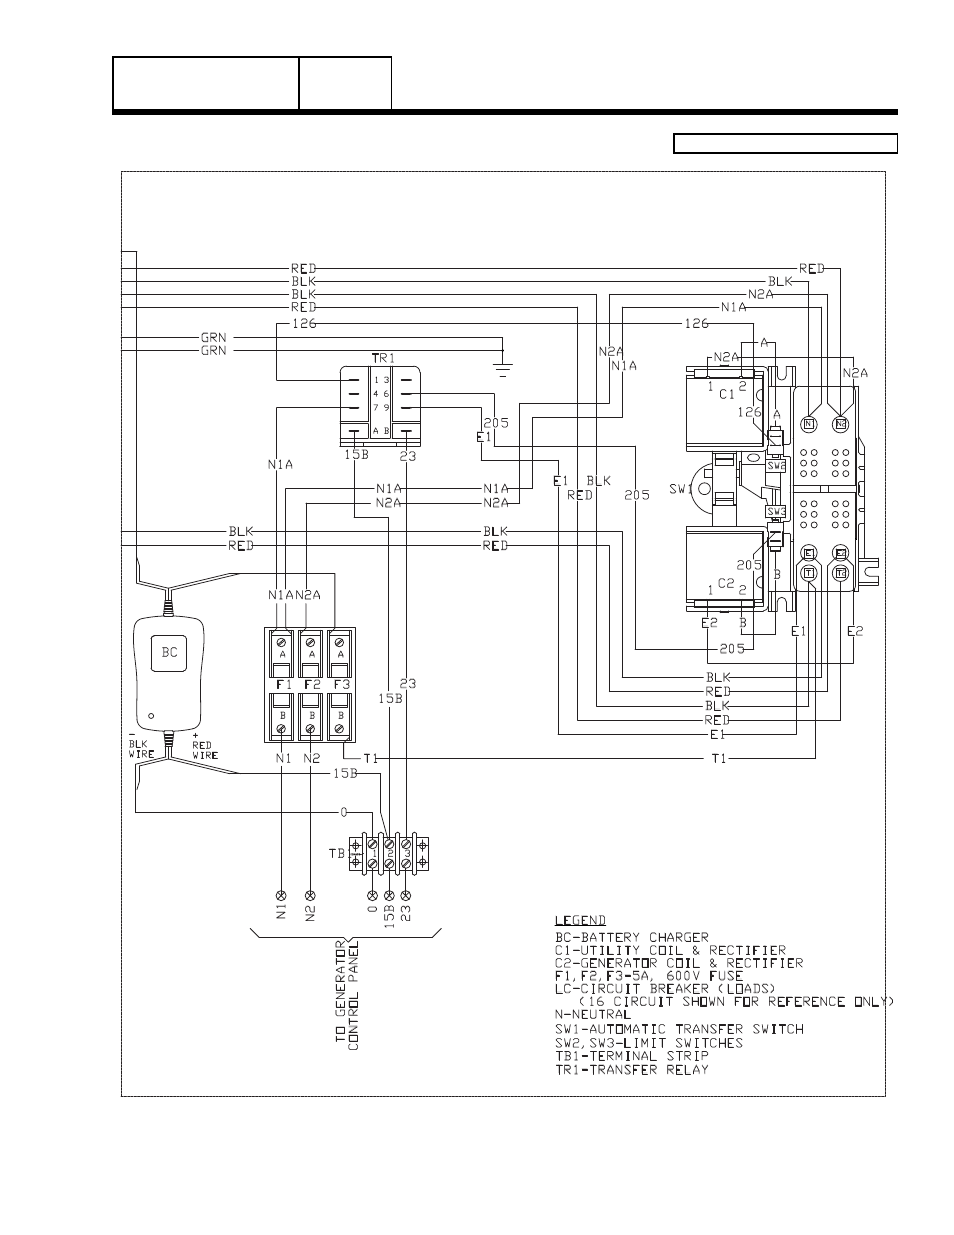 8 Kw Generac Wiring Diagram Wire Data Schema Generator Schematics Group G Home Standby Part 7 Power Rh Manualsdir Com 11kw Schematic Automatic Transfer Switches